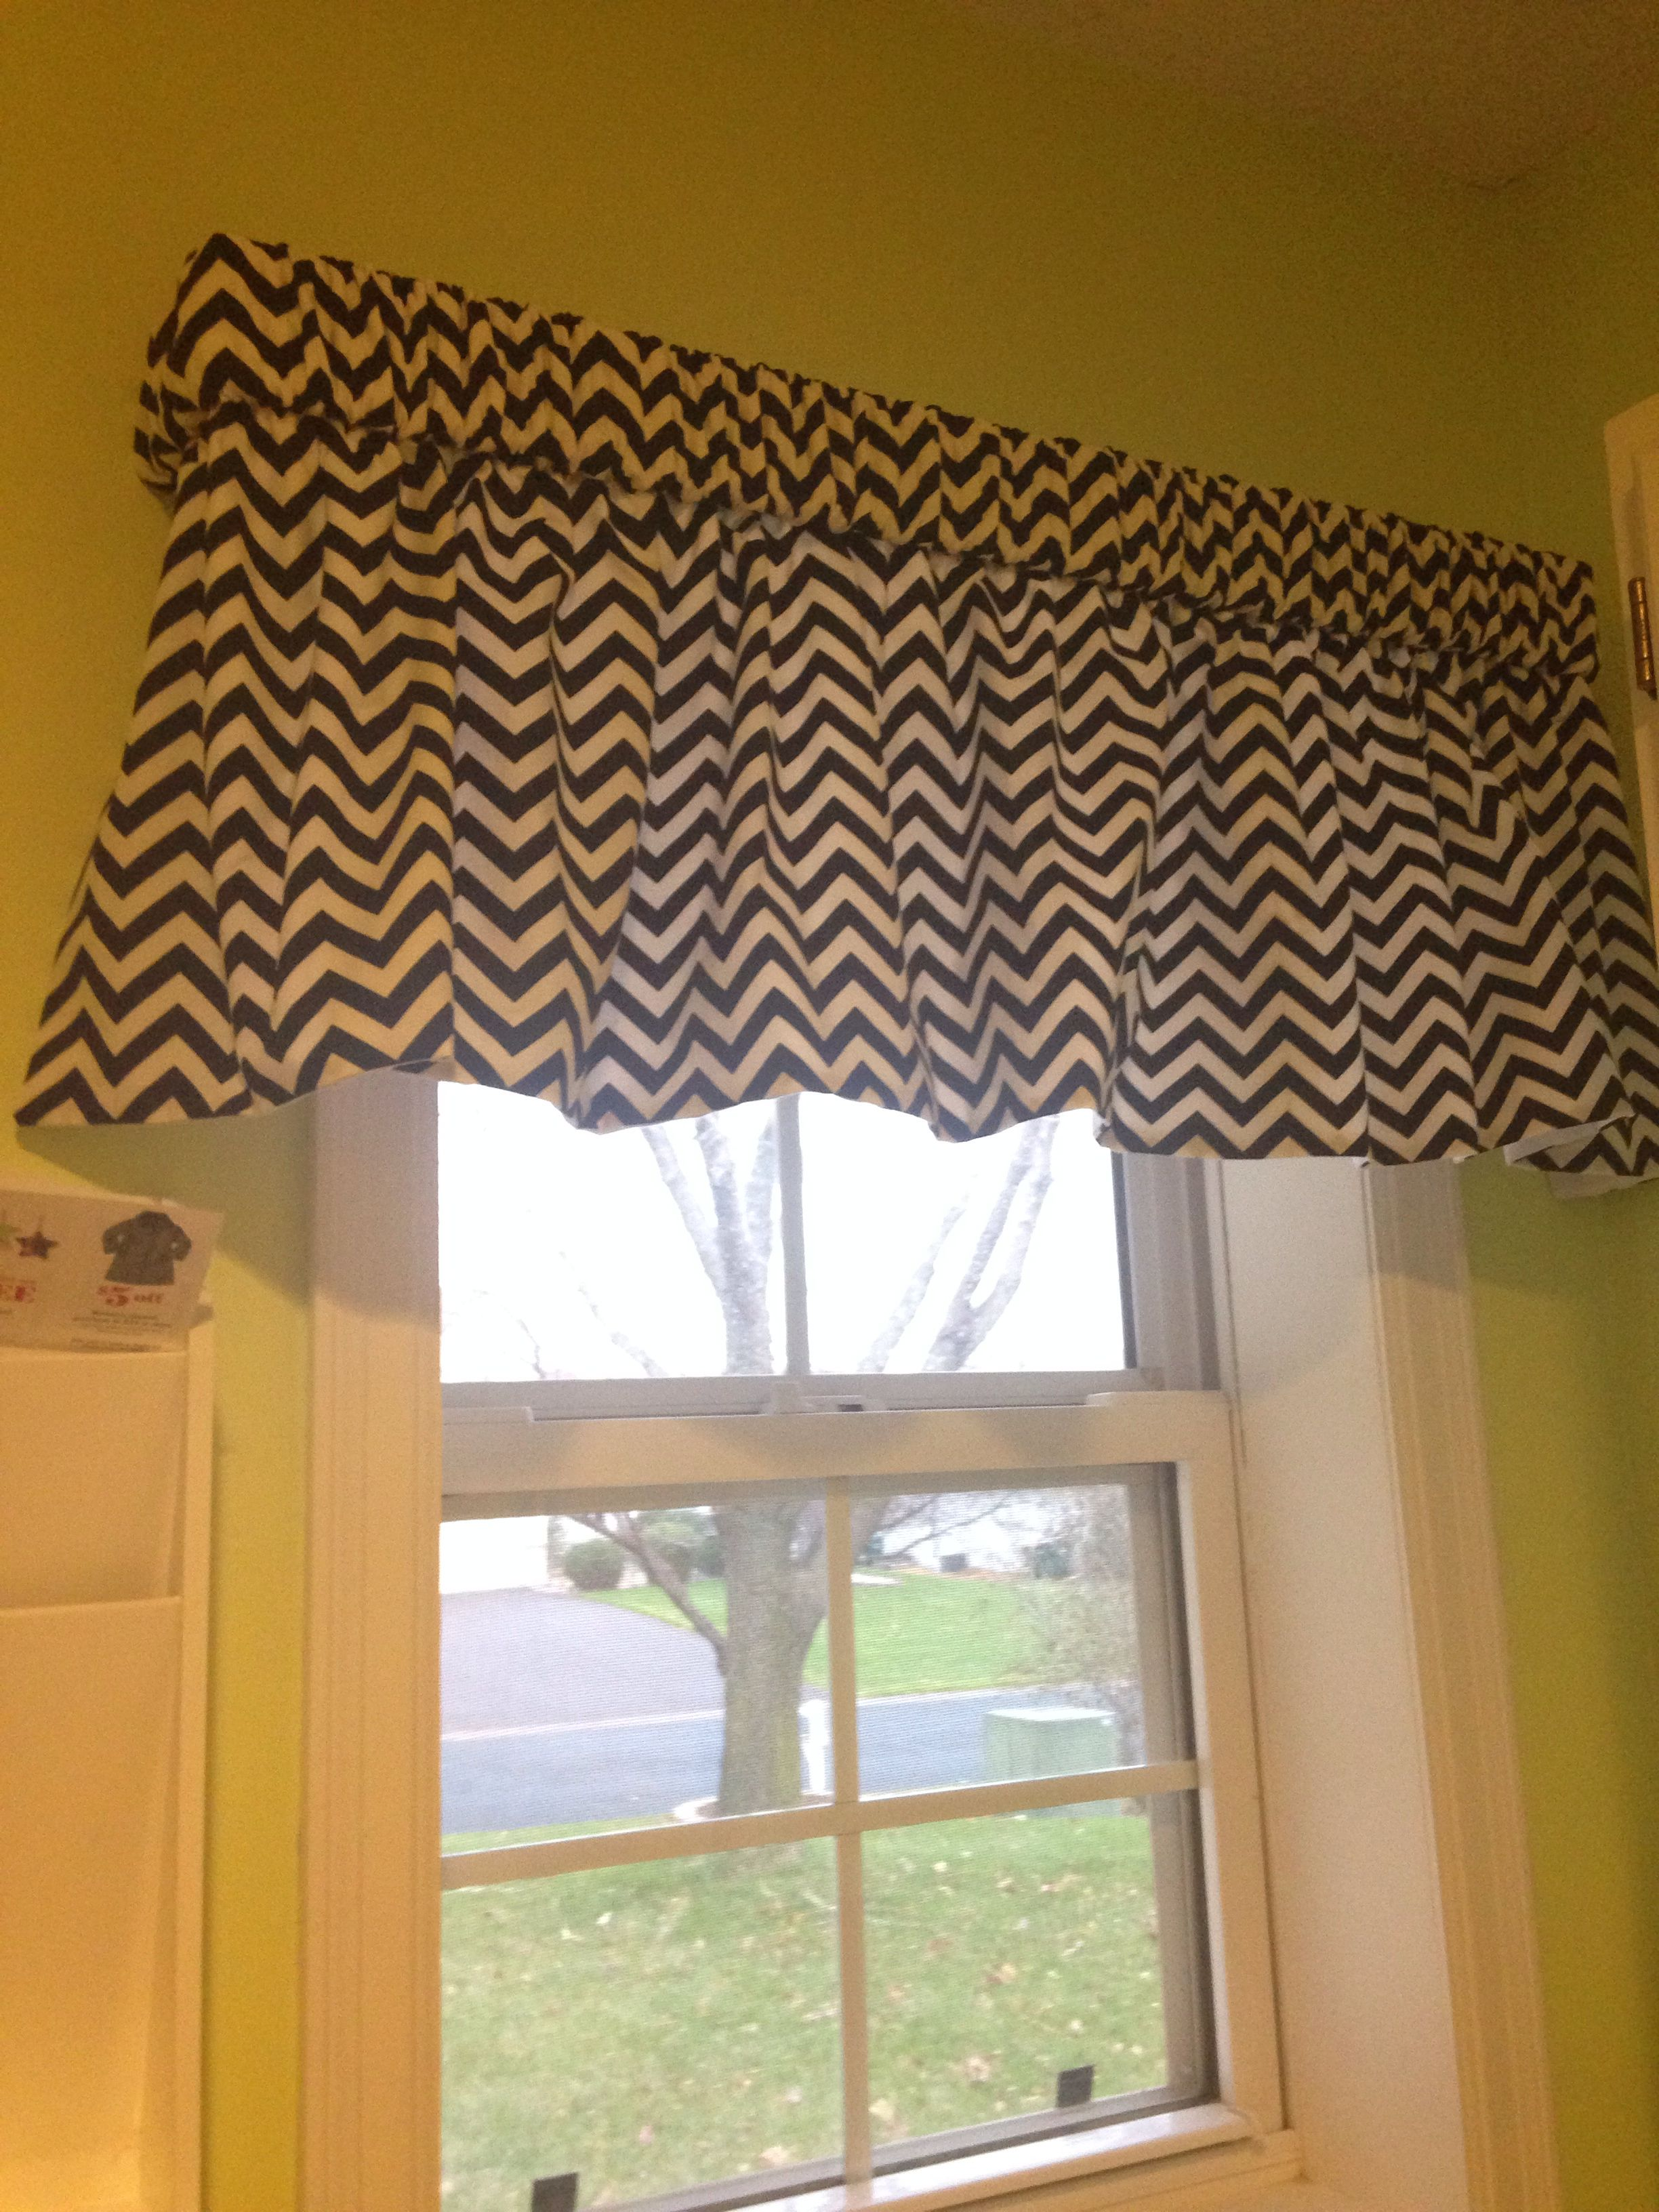 My Cute Valance We Mom Made For Laundry Room